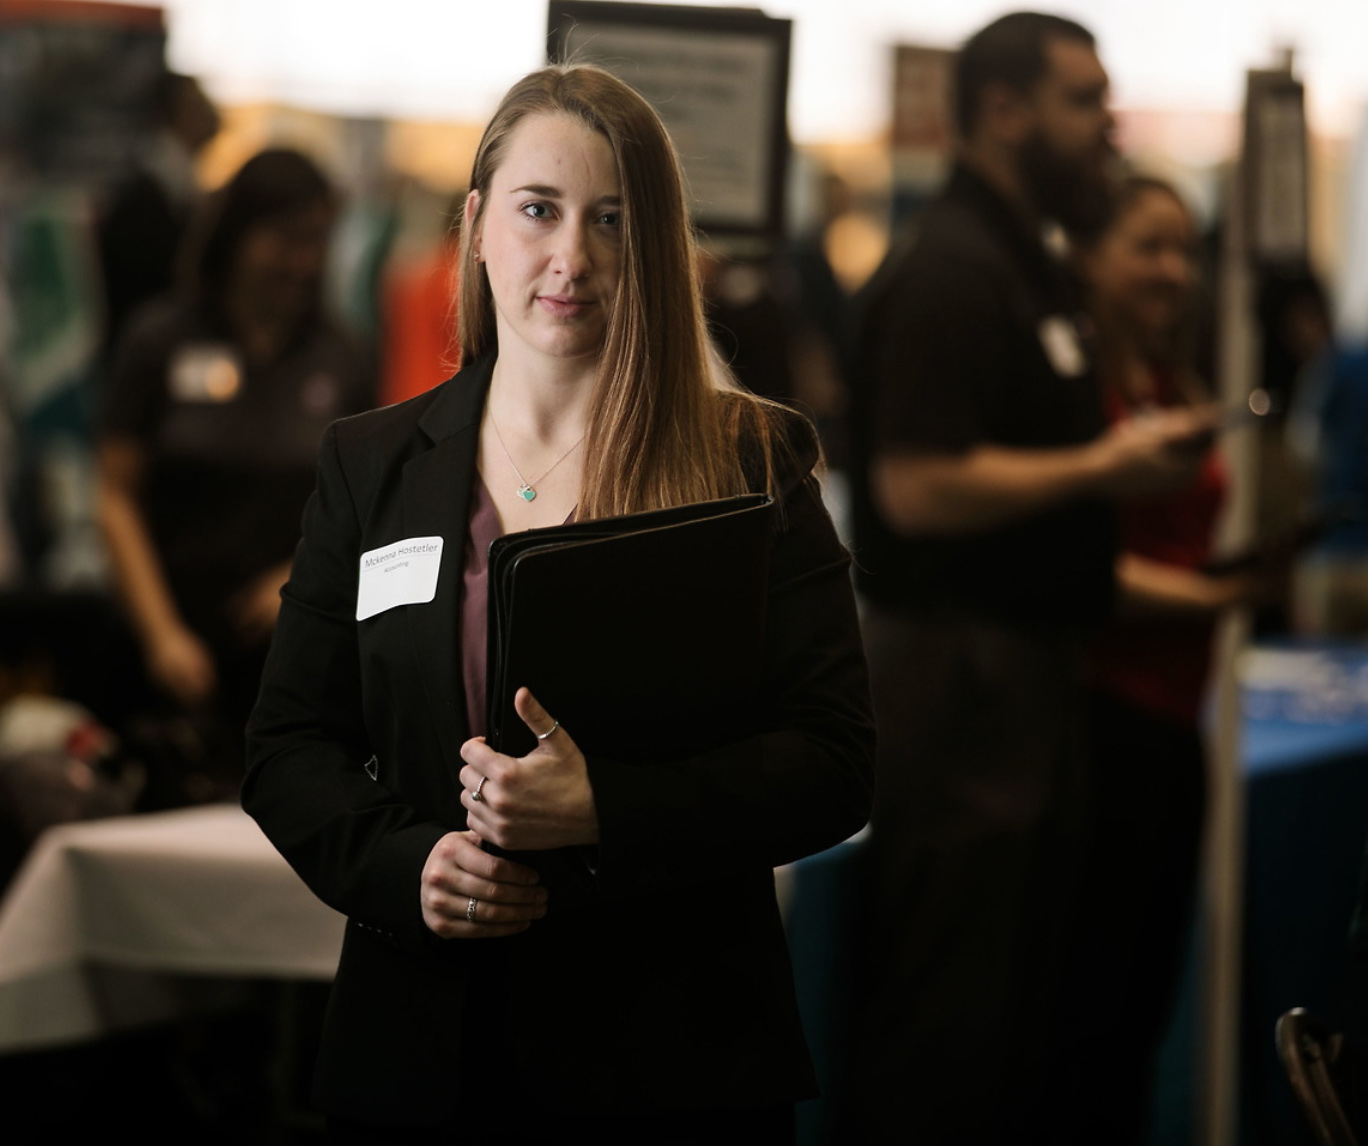 Student participating in the annual career fair